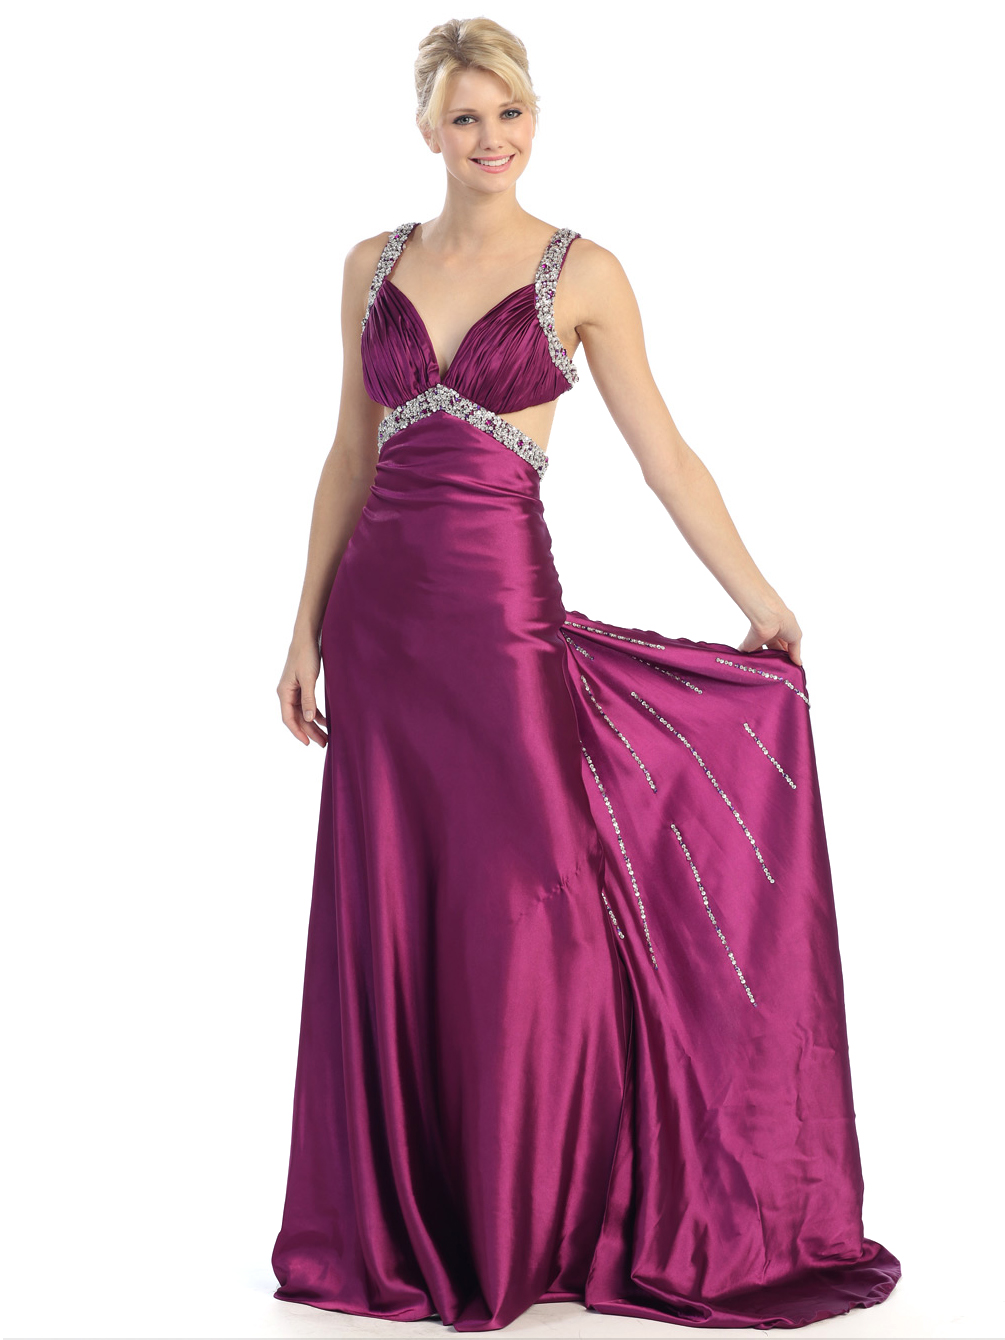 Star Back Prom Dress Sung Boutique L A